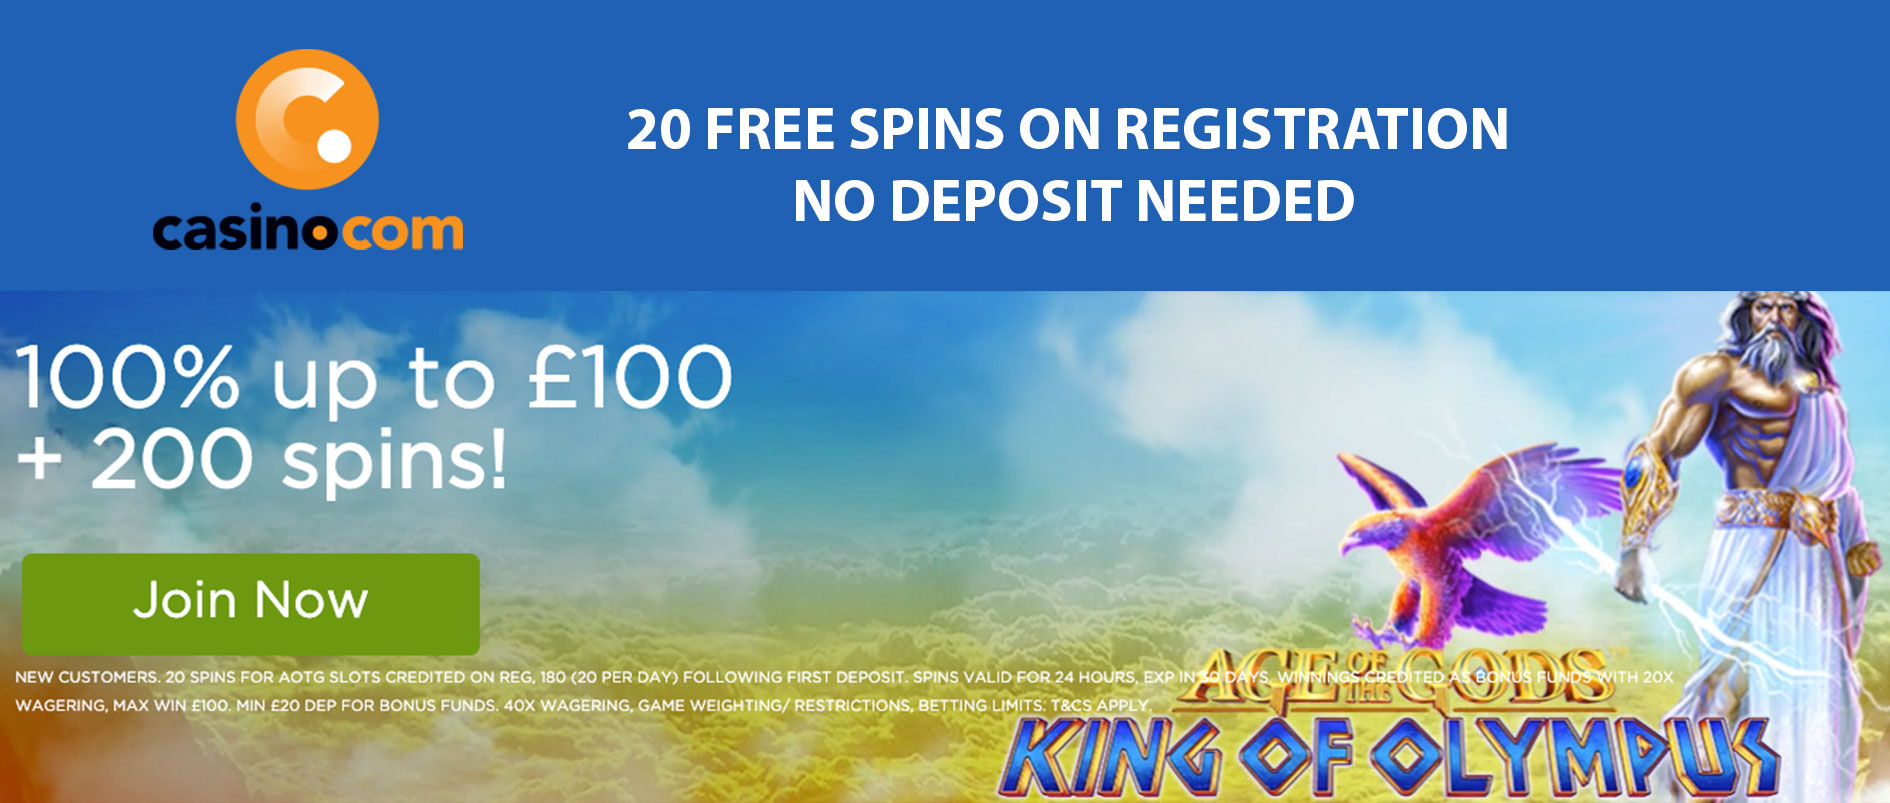 casino.com free spins no deposit